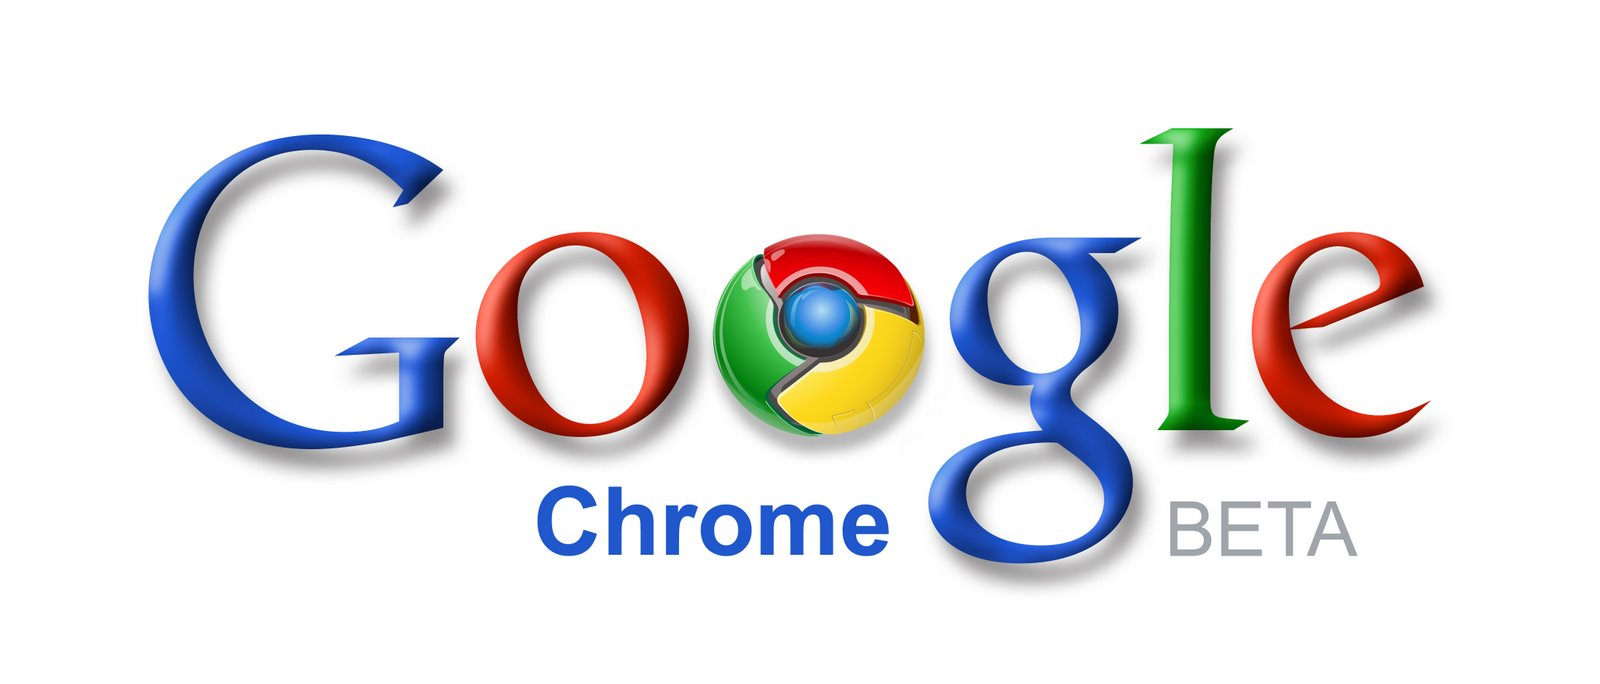 Free Download Google Chrome Software or Application Full